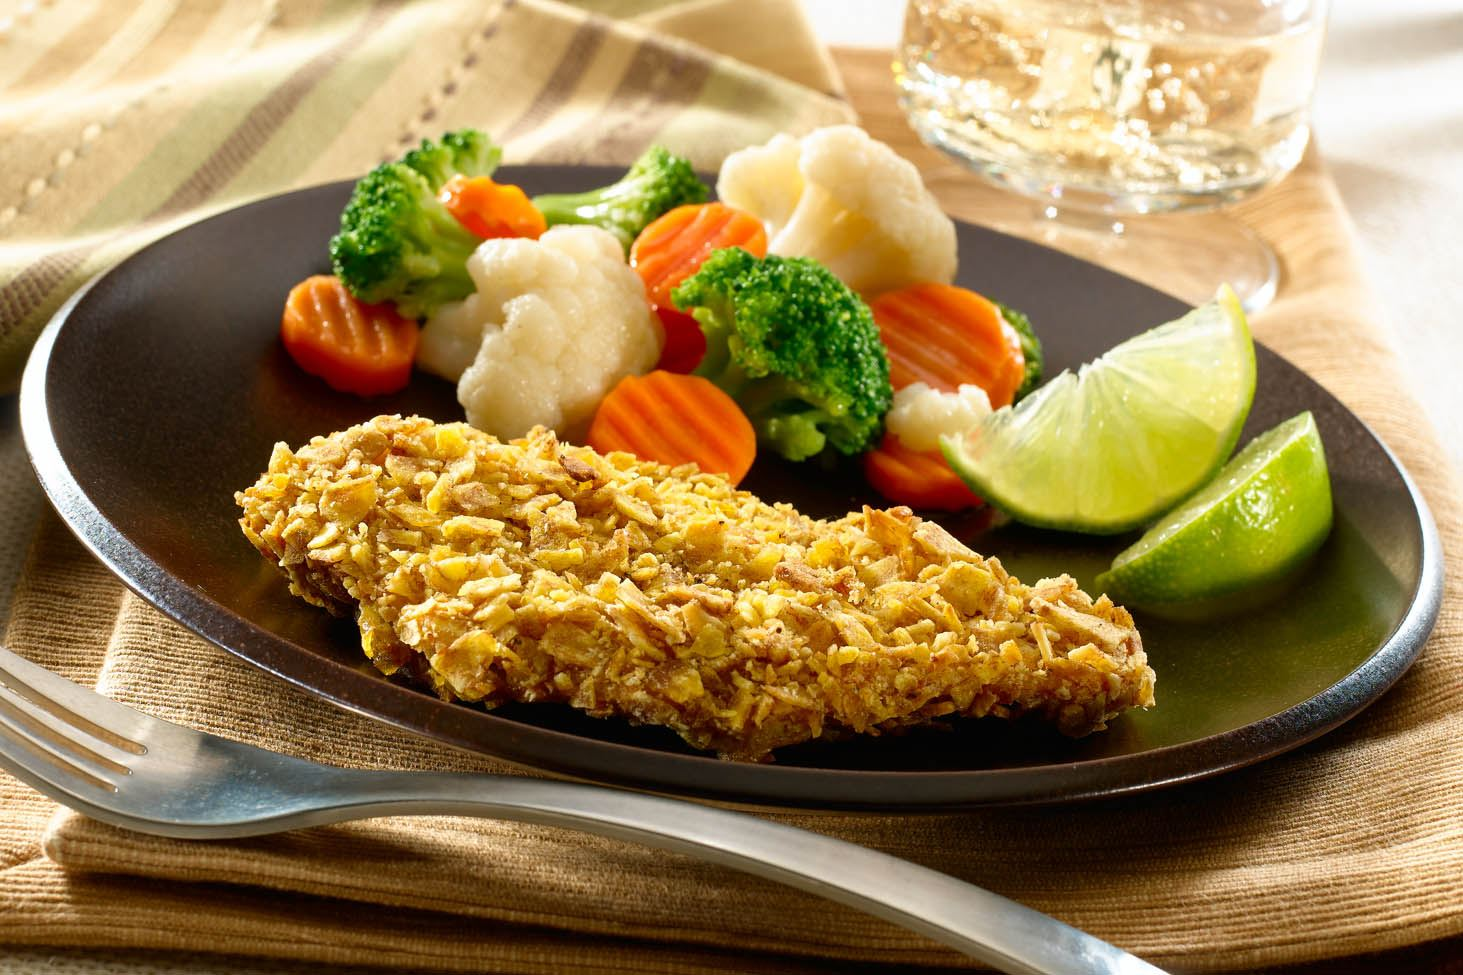 Crunchy Plantain-Crusted Chicken